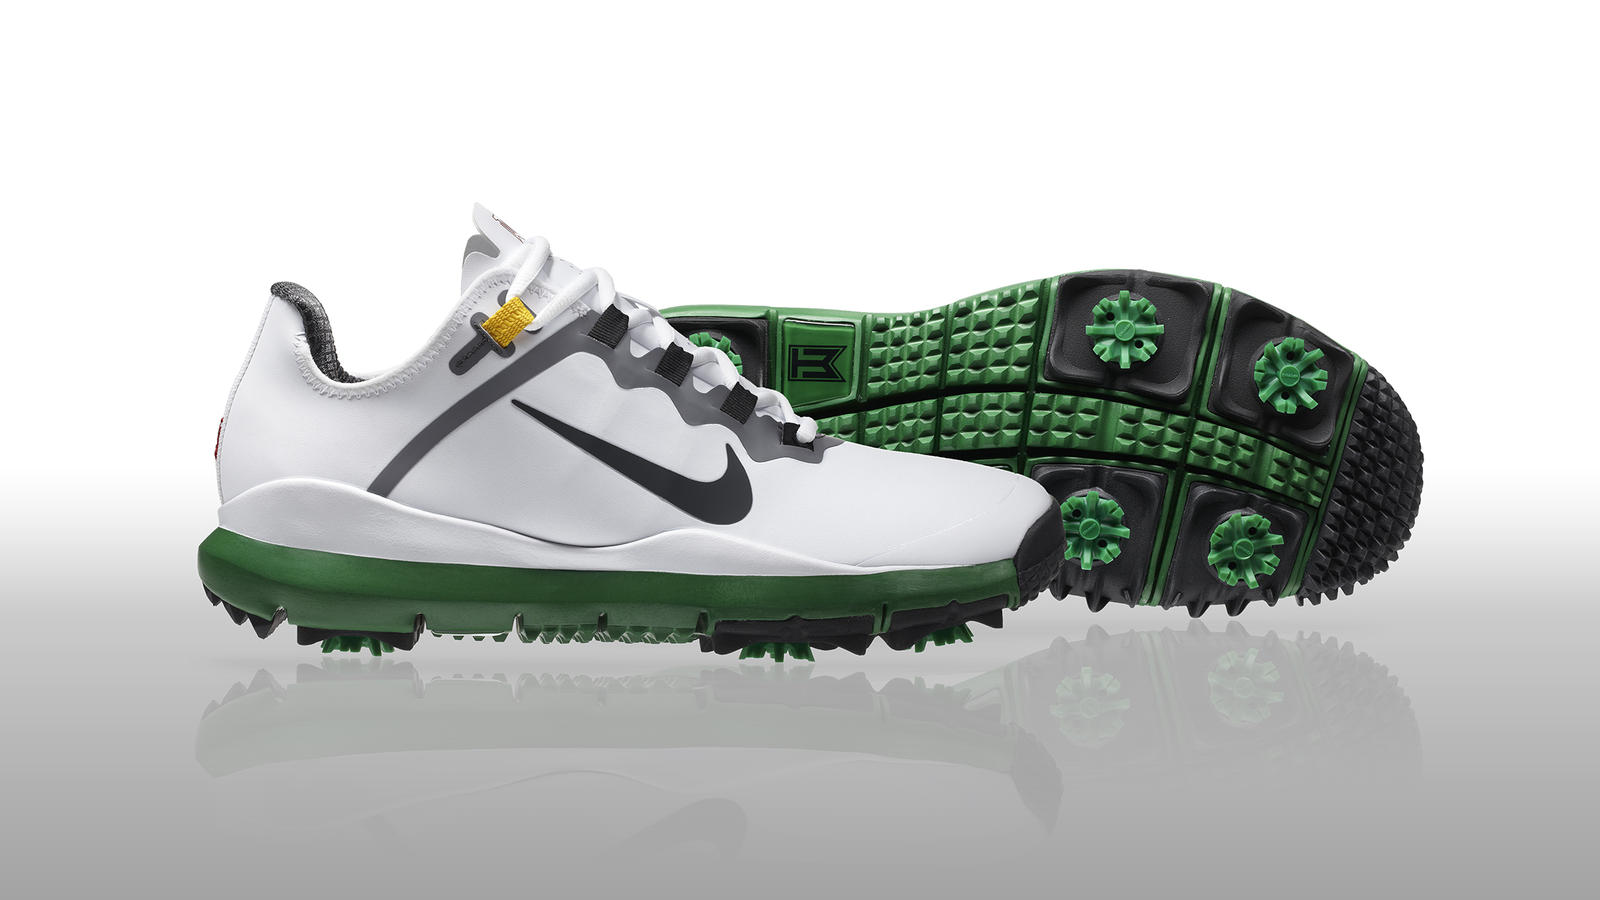 Nike Golf Adds Color to its Iconic TW